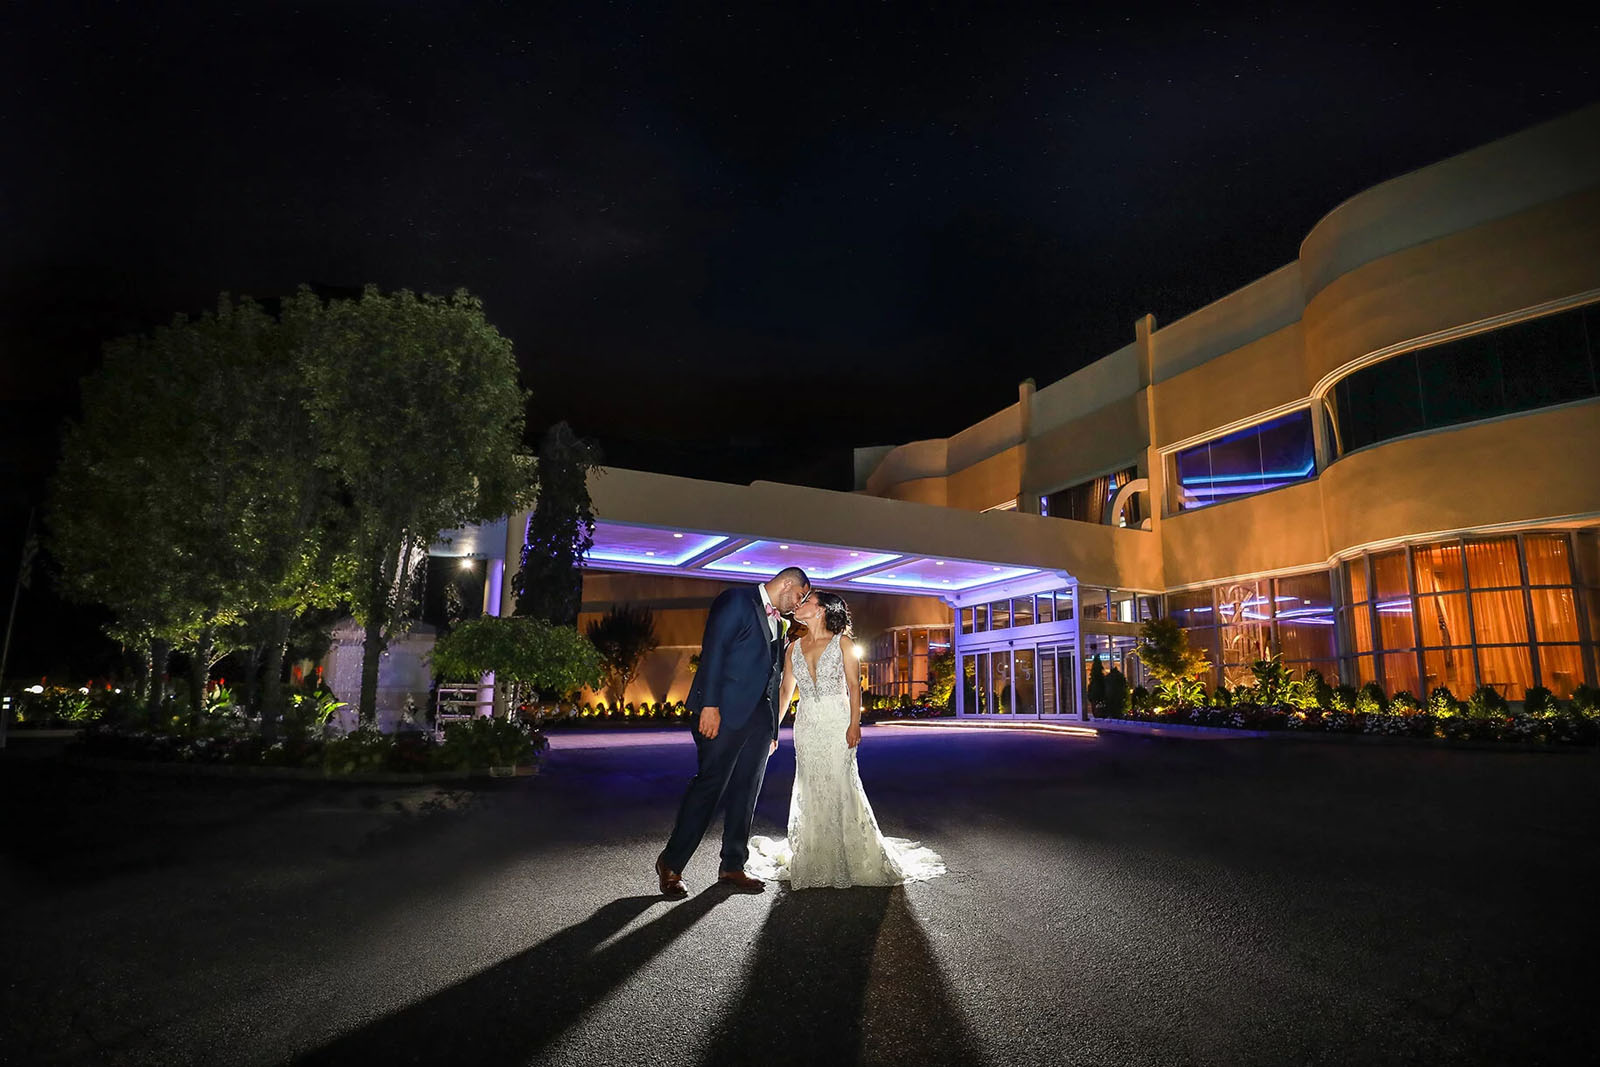 Crucial Considerations When Choosing A Wedding Venue